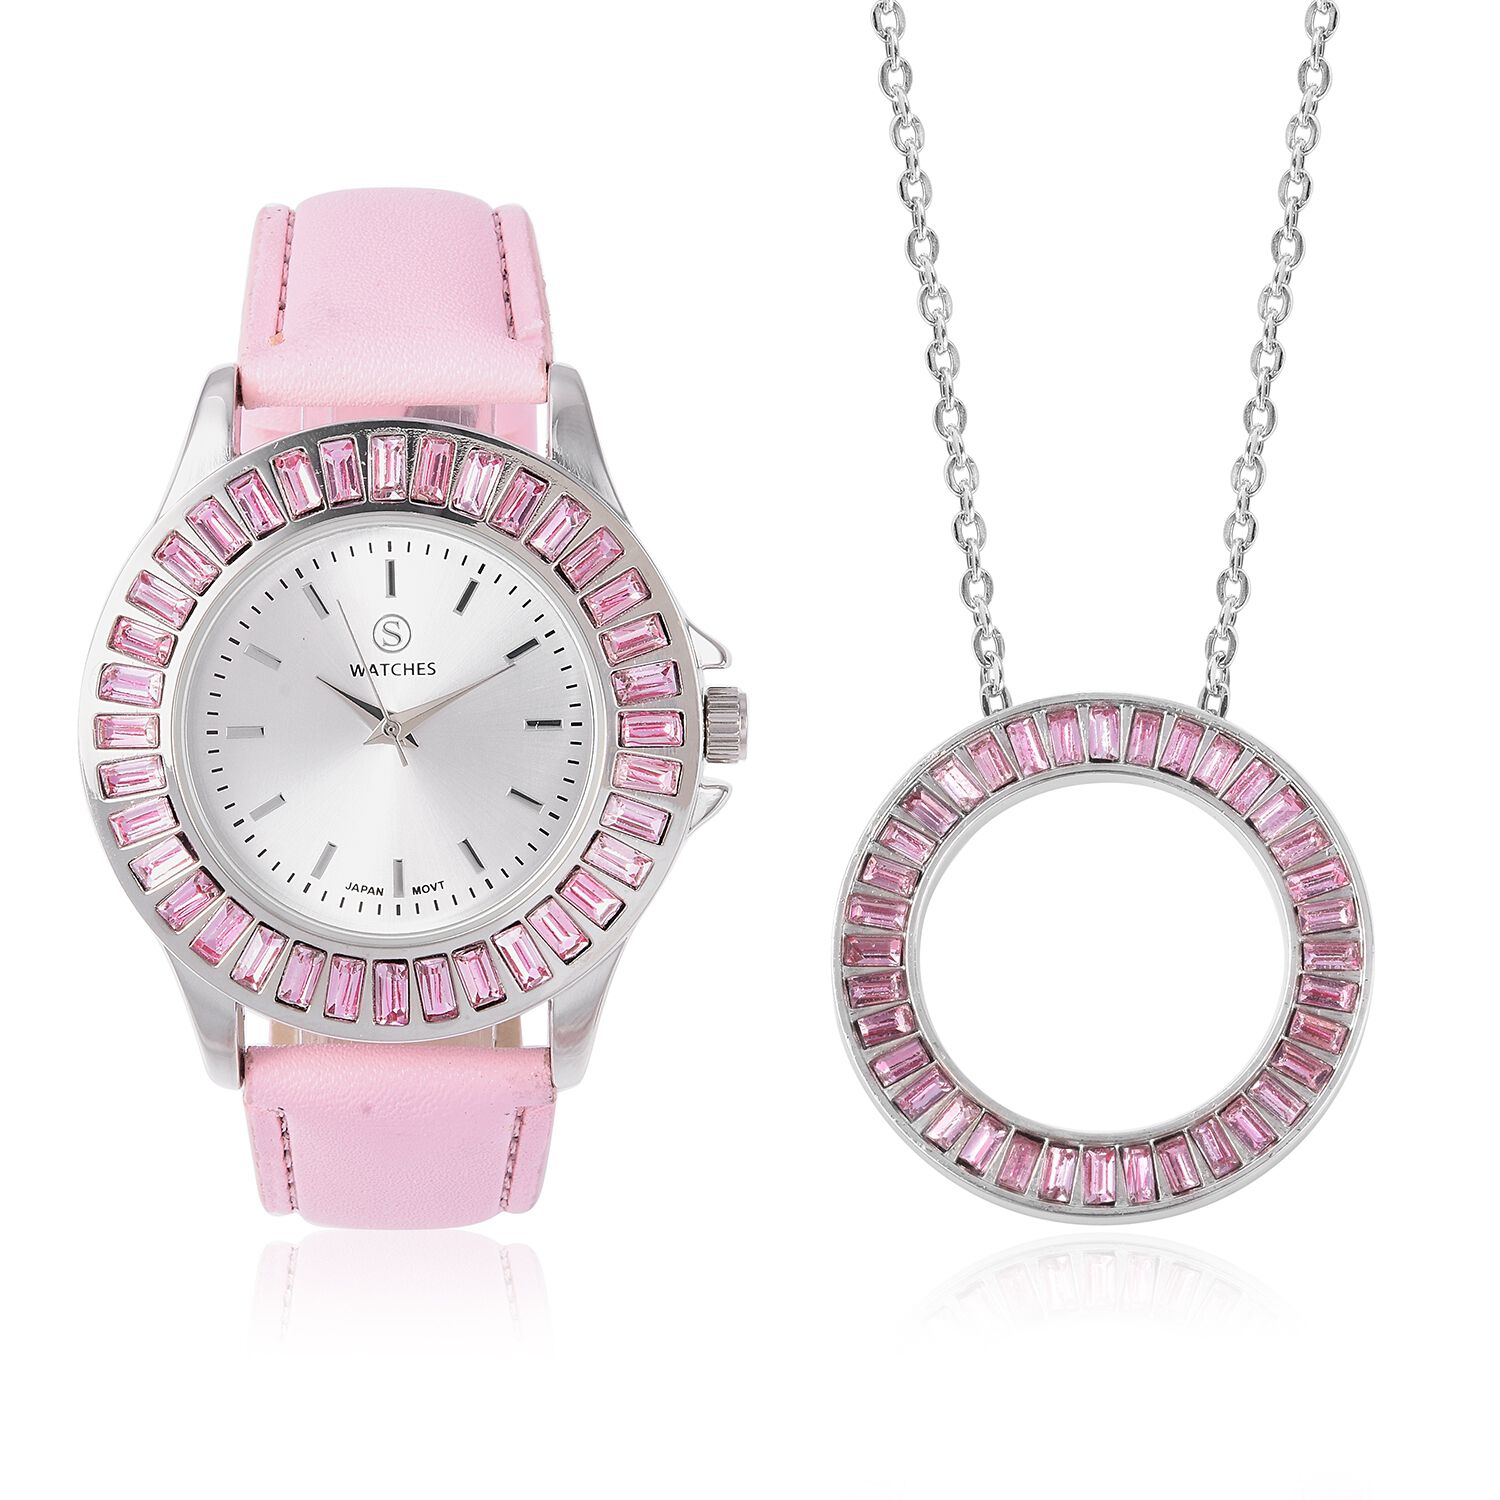 2 Piece Set STRADA Japanese Movement Water Resistant Simulated Pink Diamond Studded Watch with Pink Strap and Necklace Size 24